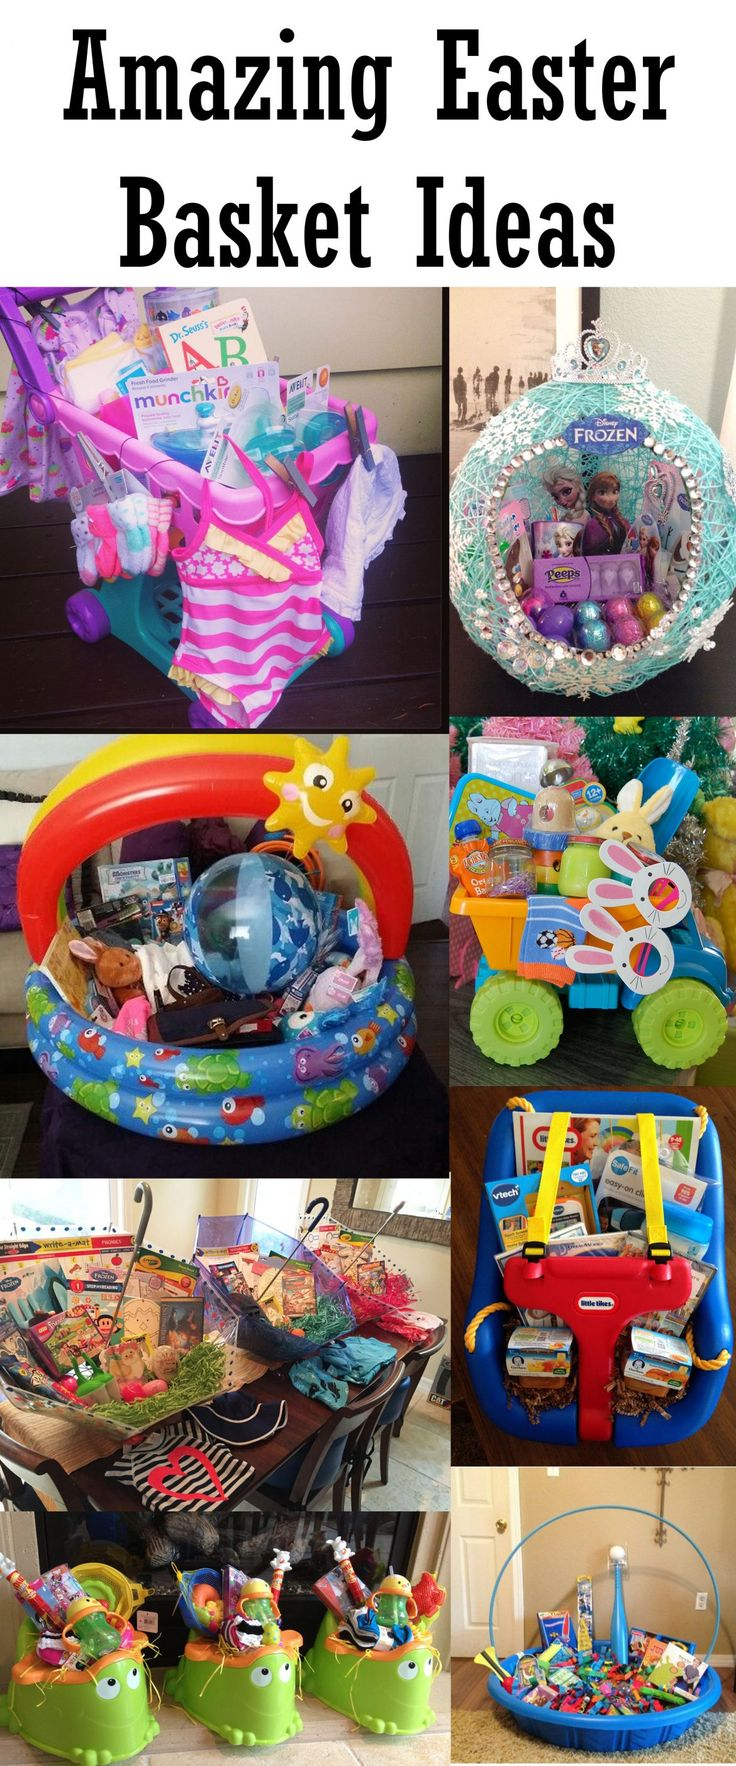 The 25 best baby easter basket ideas on pinterest easter amazing easter basket ideas 1 negle Images